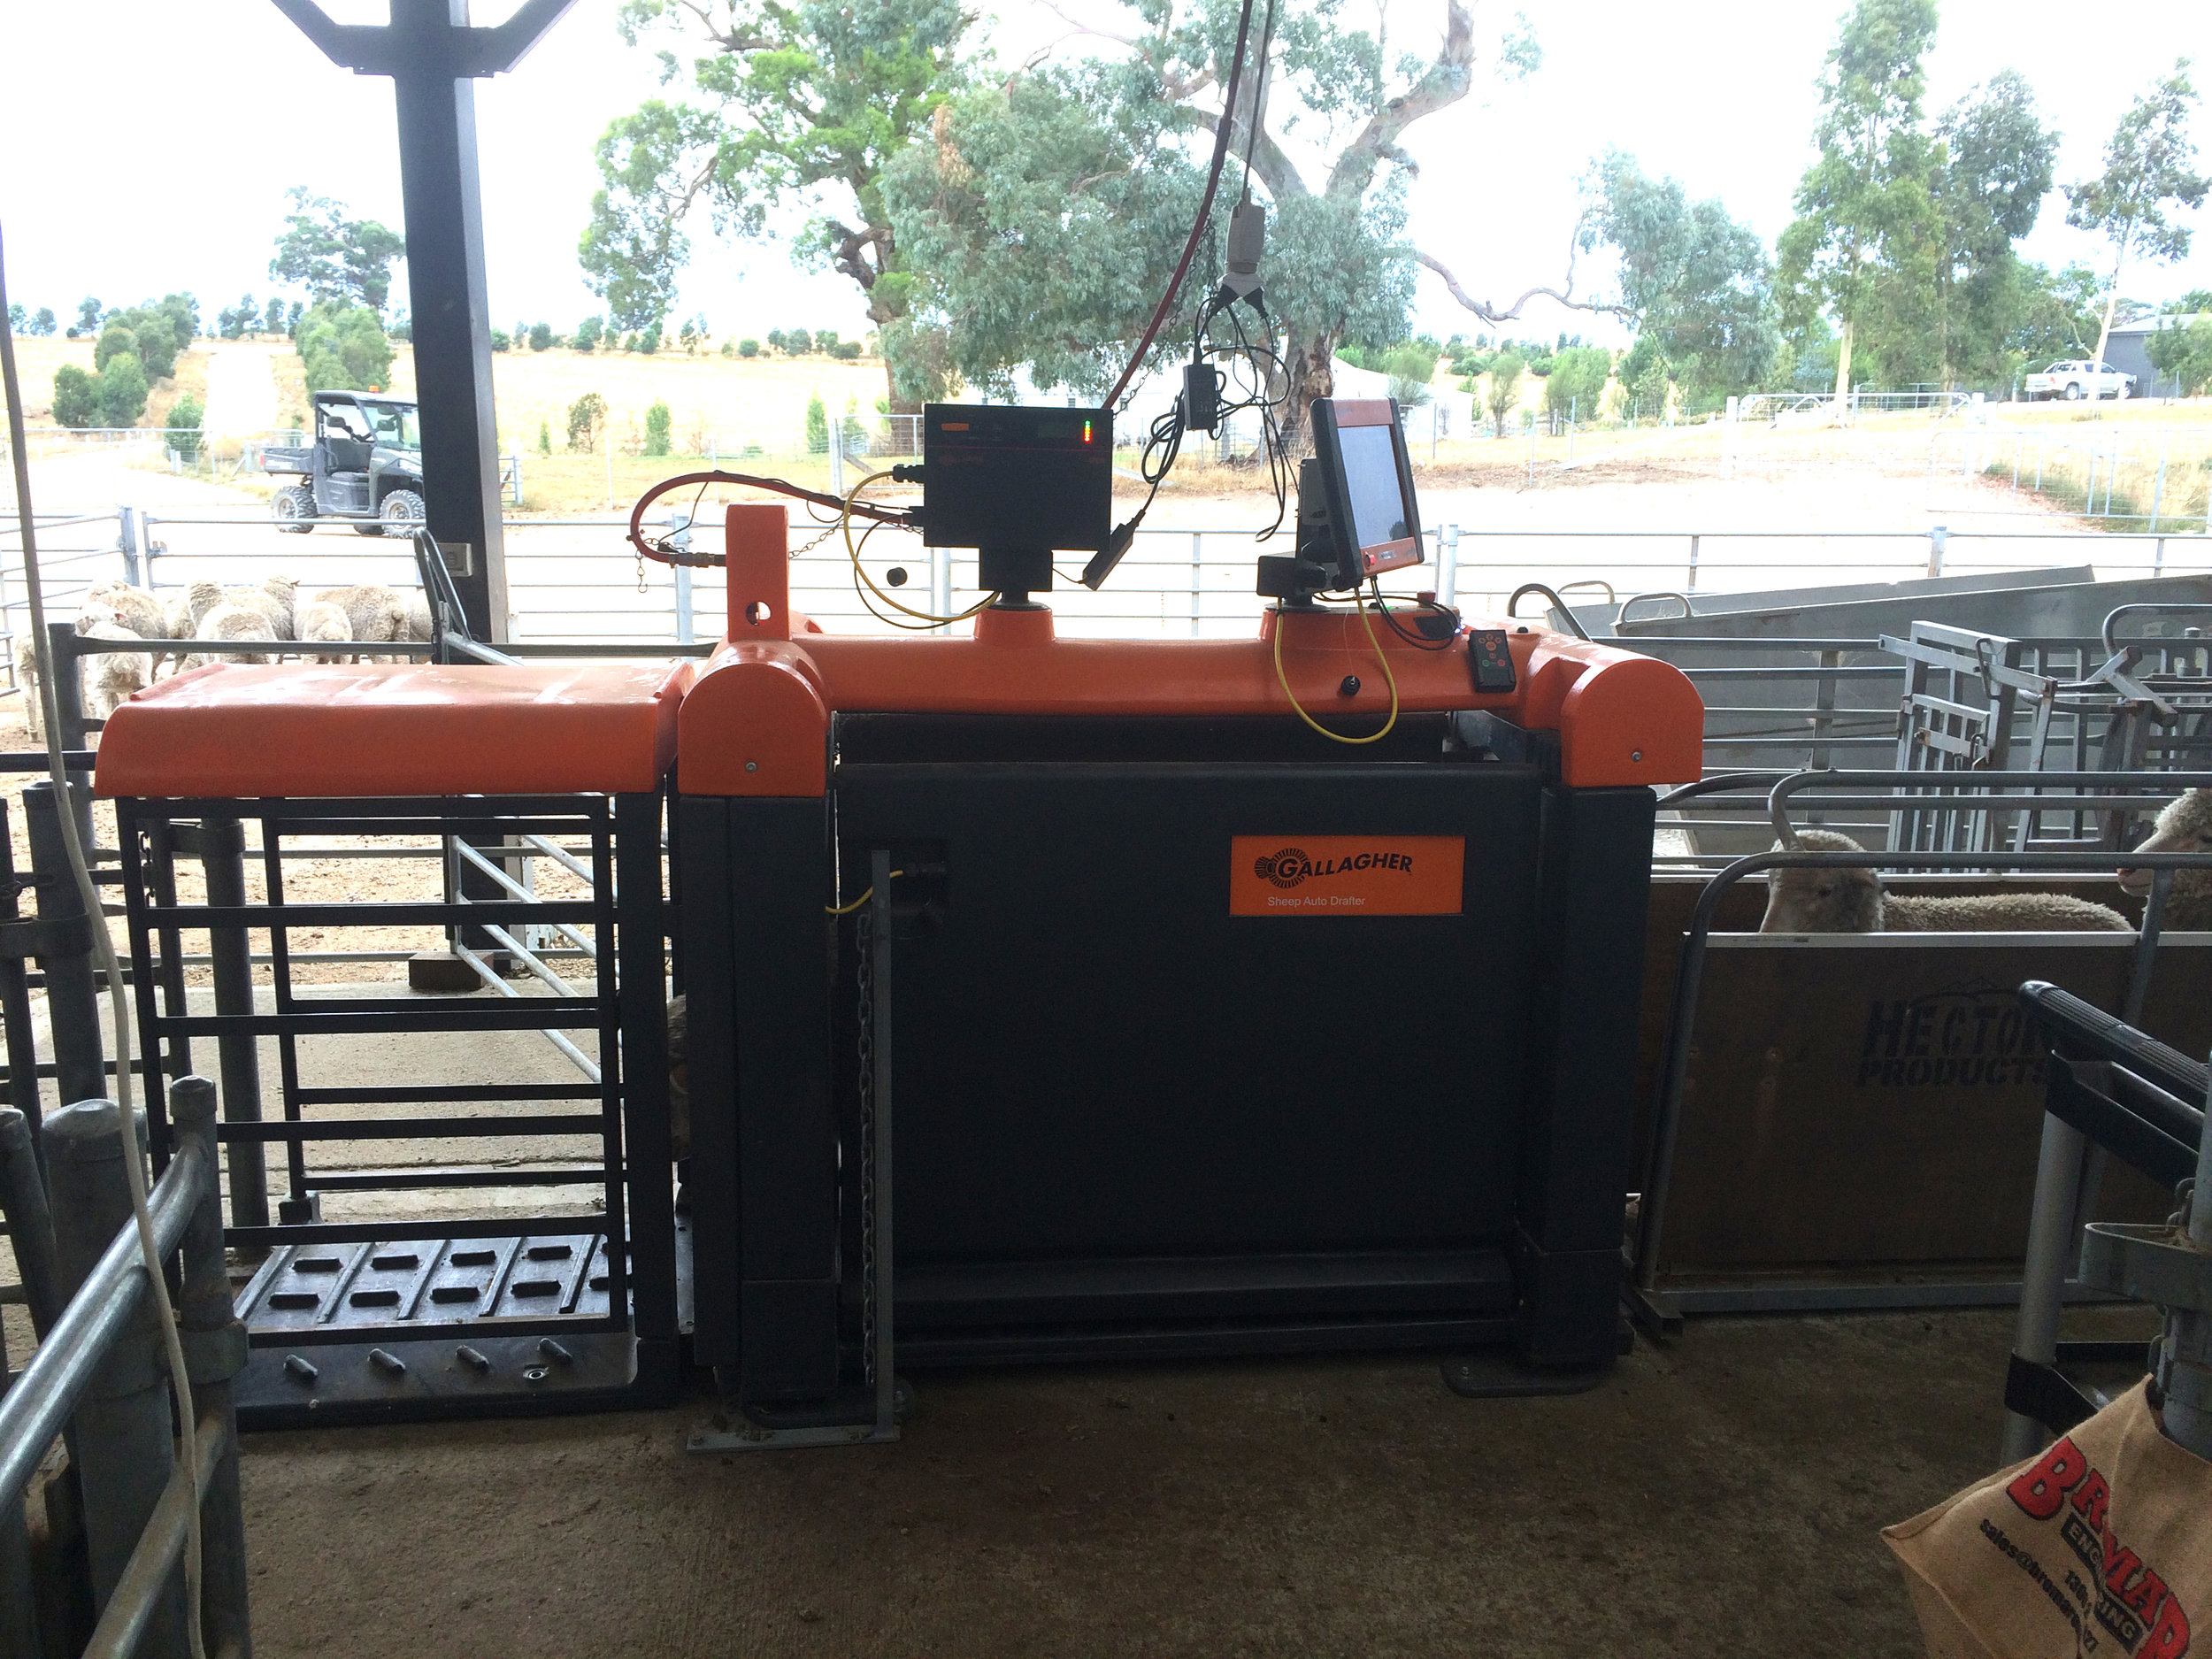 The Auto draft separates sheep quickly with minimal handling